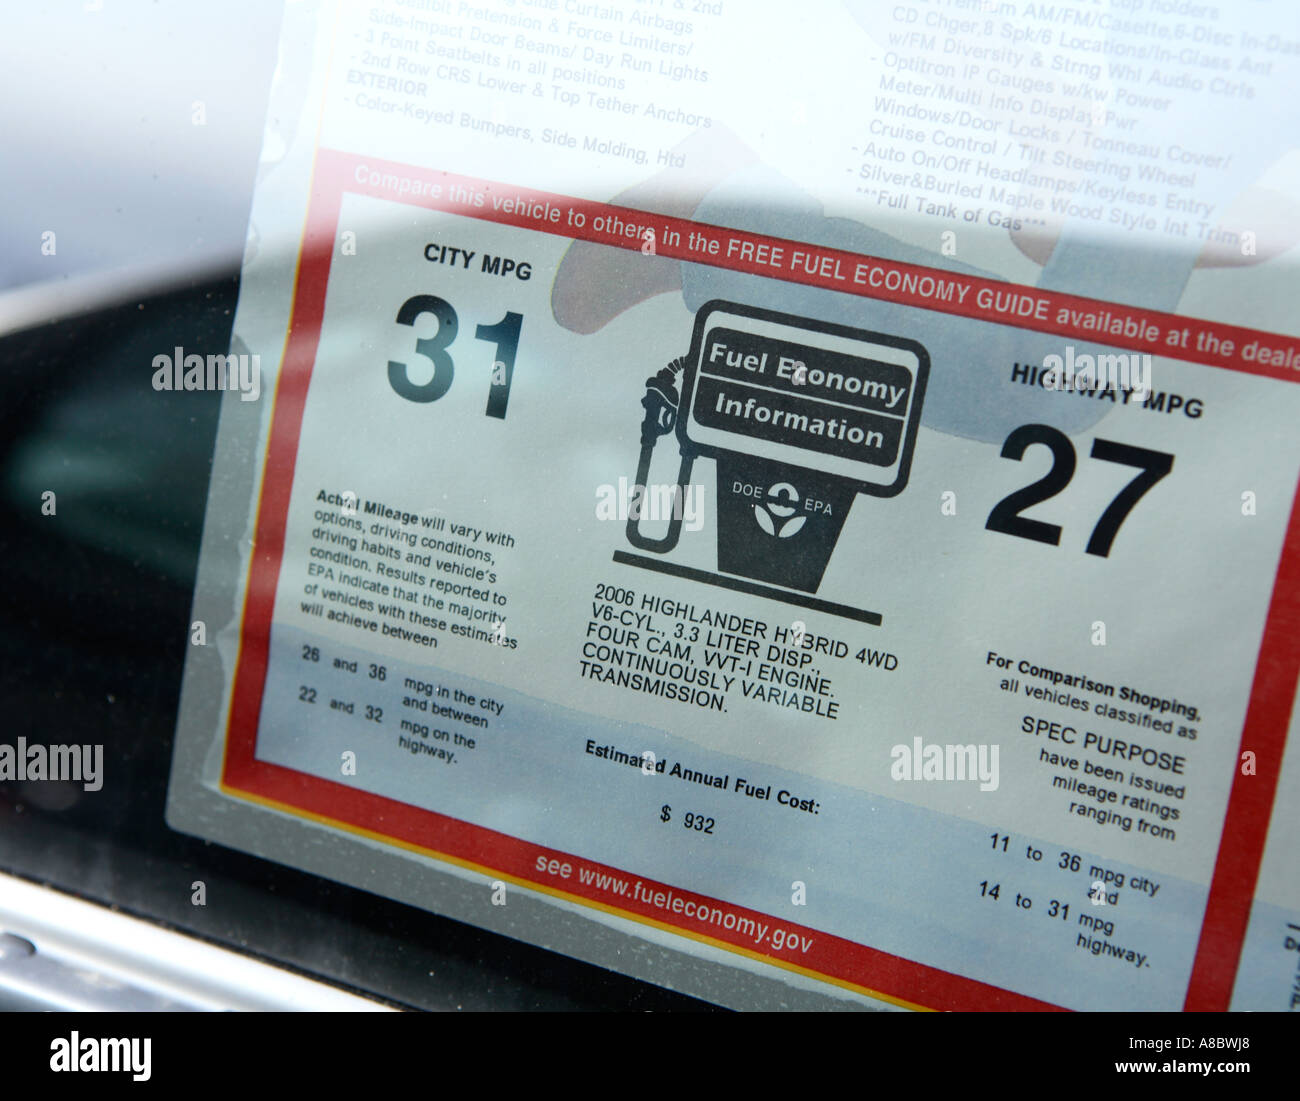 Window Sticker On A 2006 Toyota Highlander Hybrid SUV Showing Gas Mileage  Estimates   Stock Image